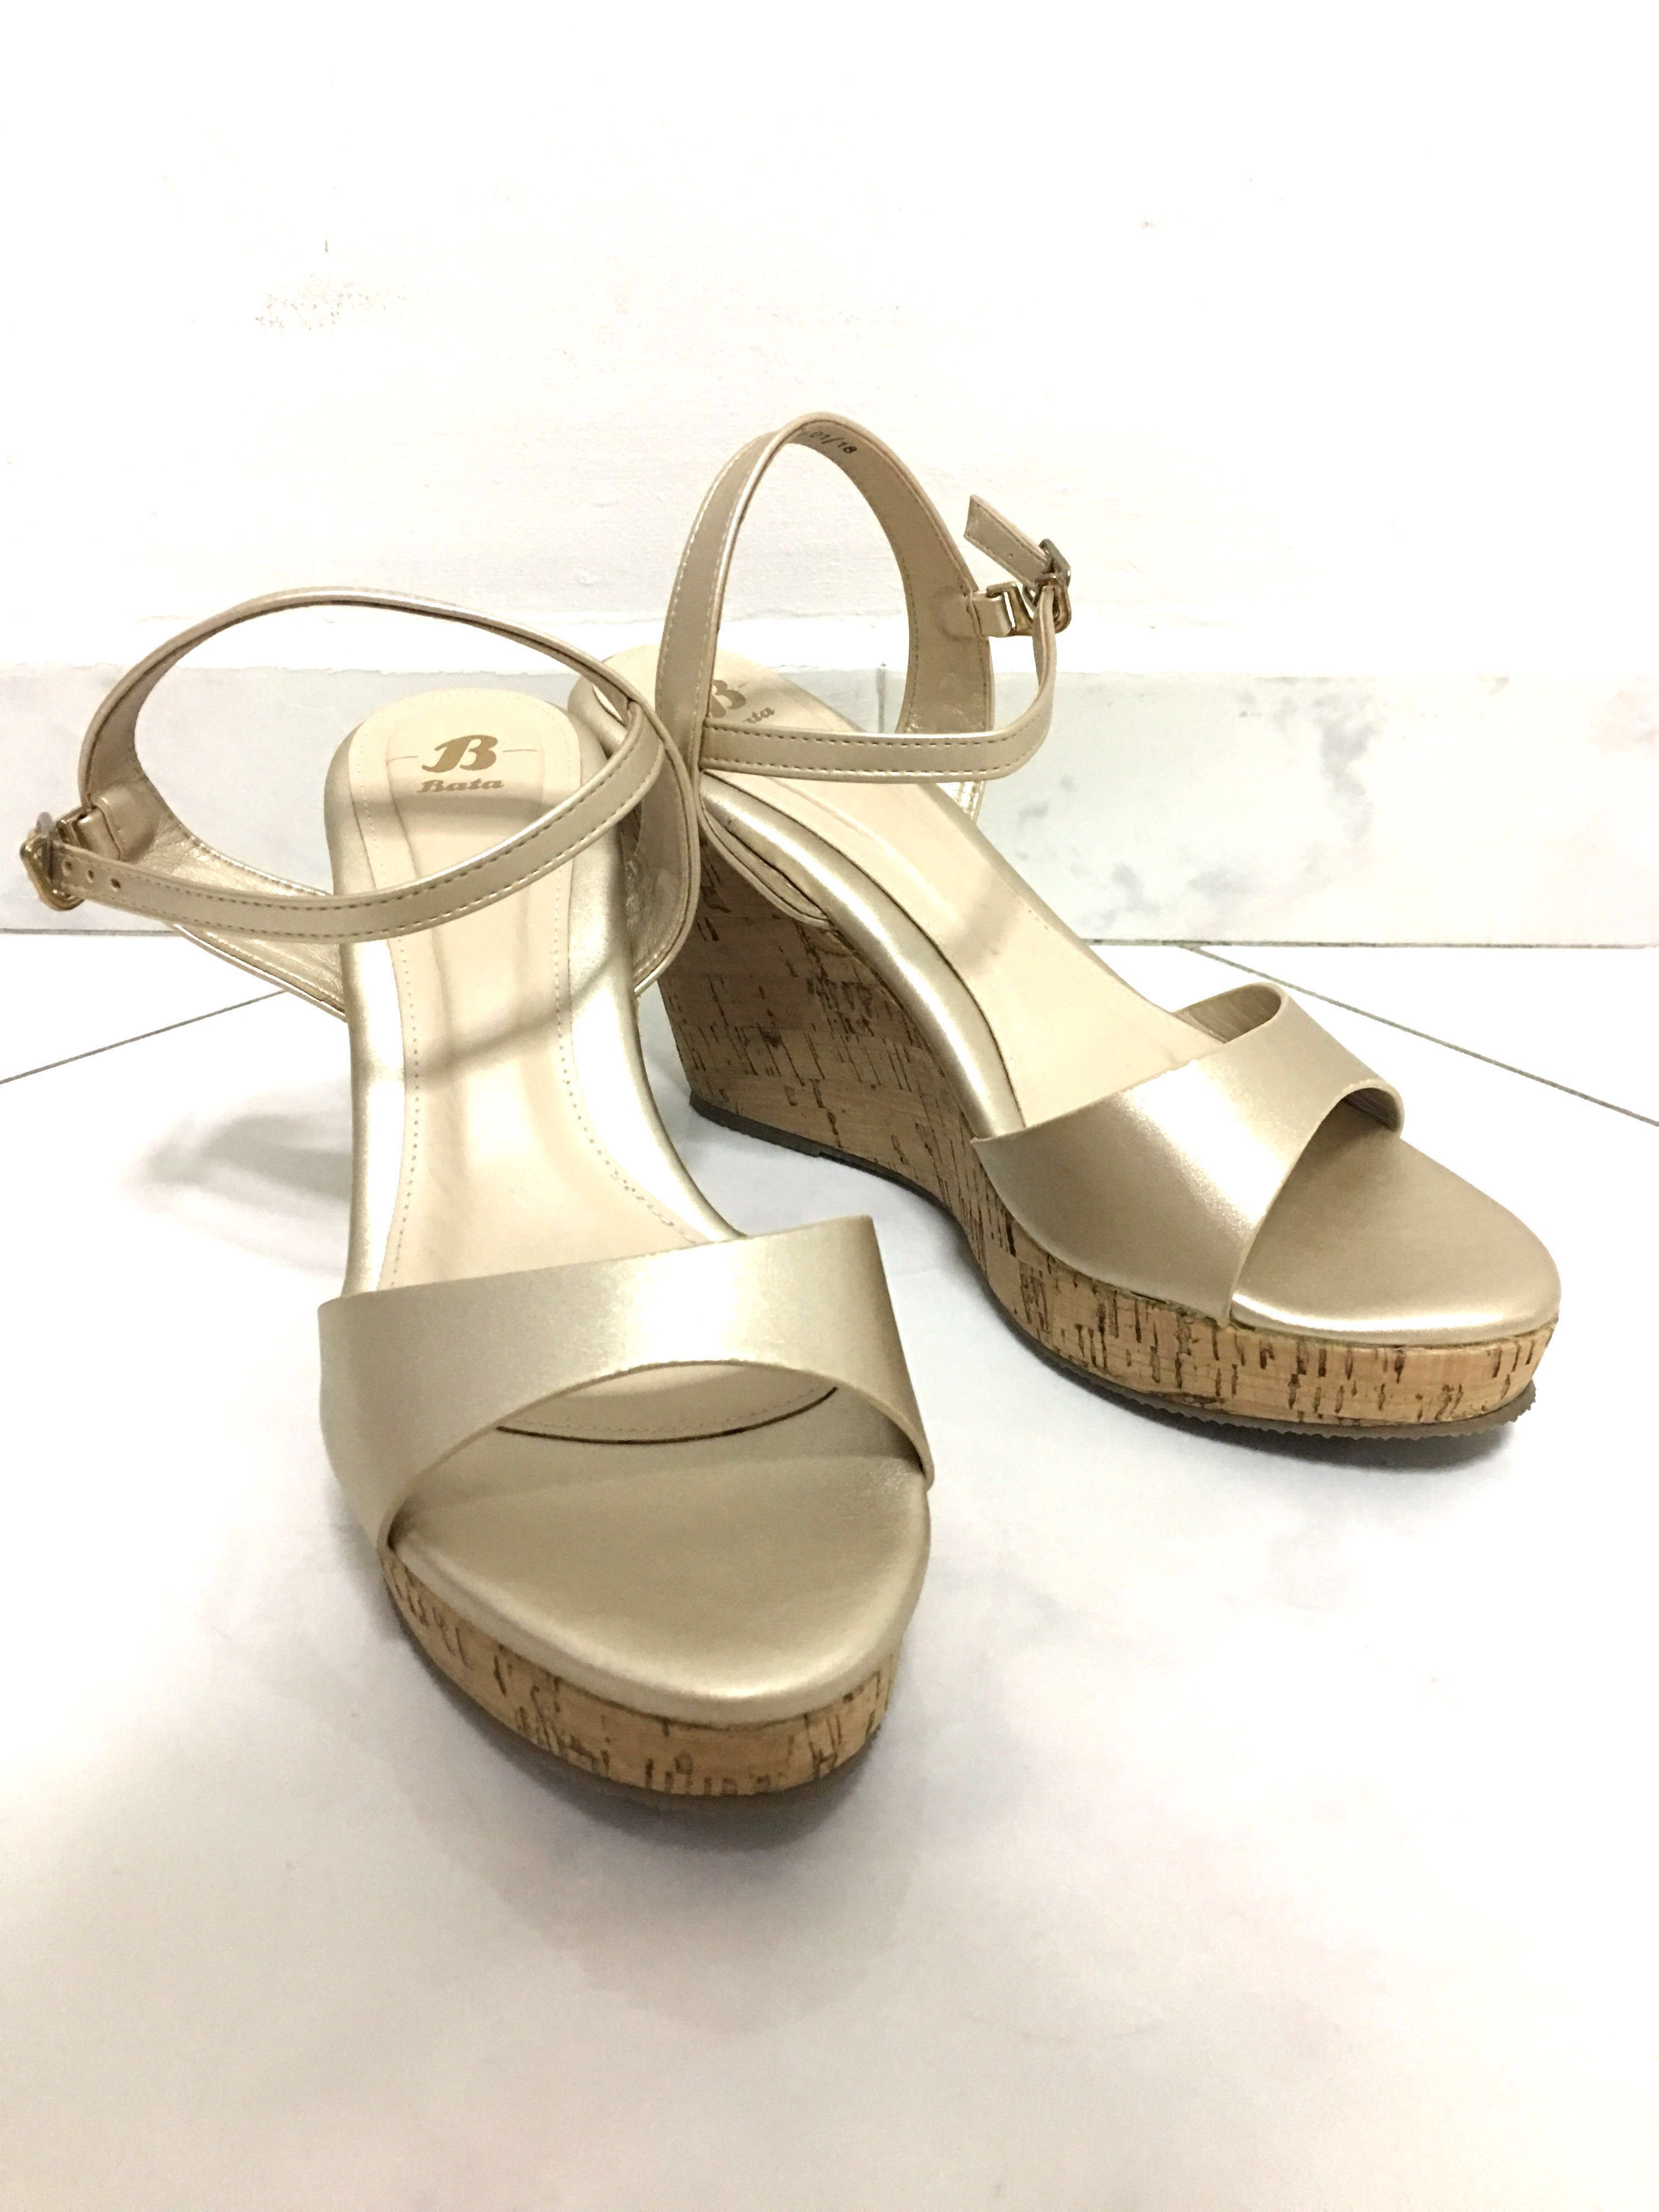 d0d2587140 Bata Golden Wedges Heels Peep Toe Shoes, Women's Fashion, Shoes, Others on  Carousell